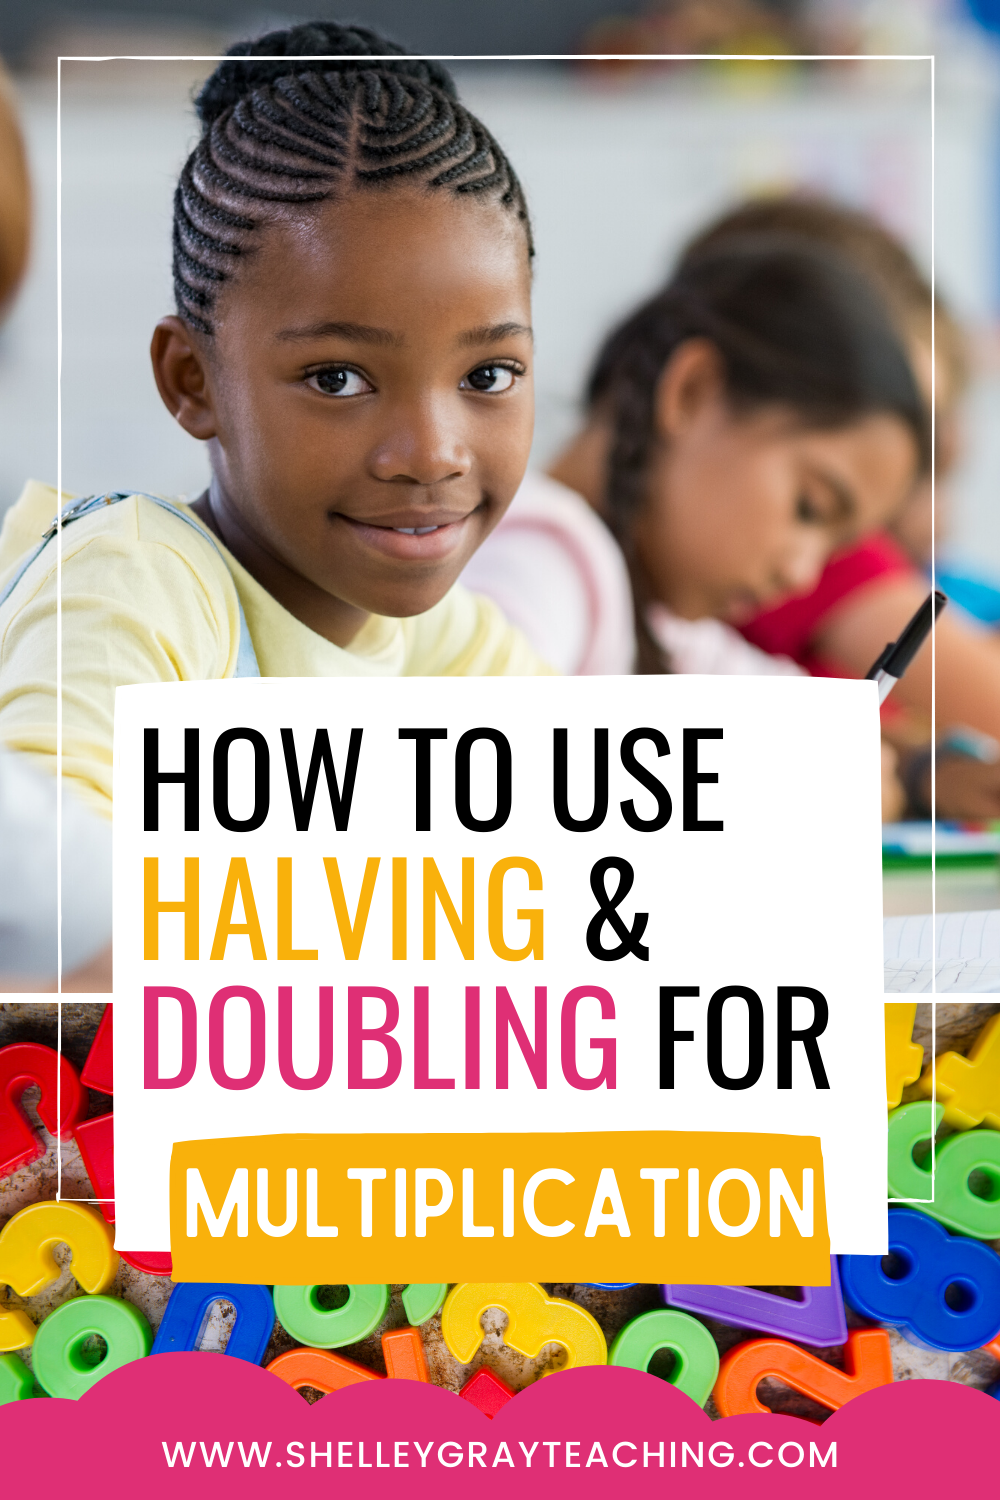 How to Use Halving & Doubling for Multiplication